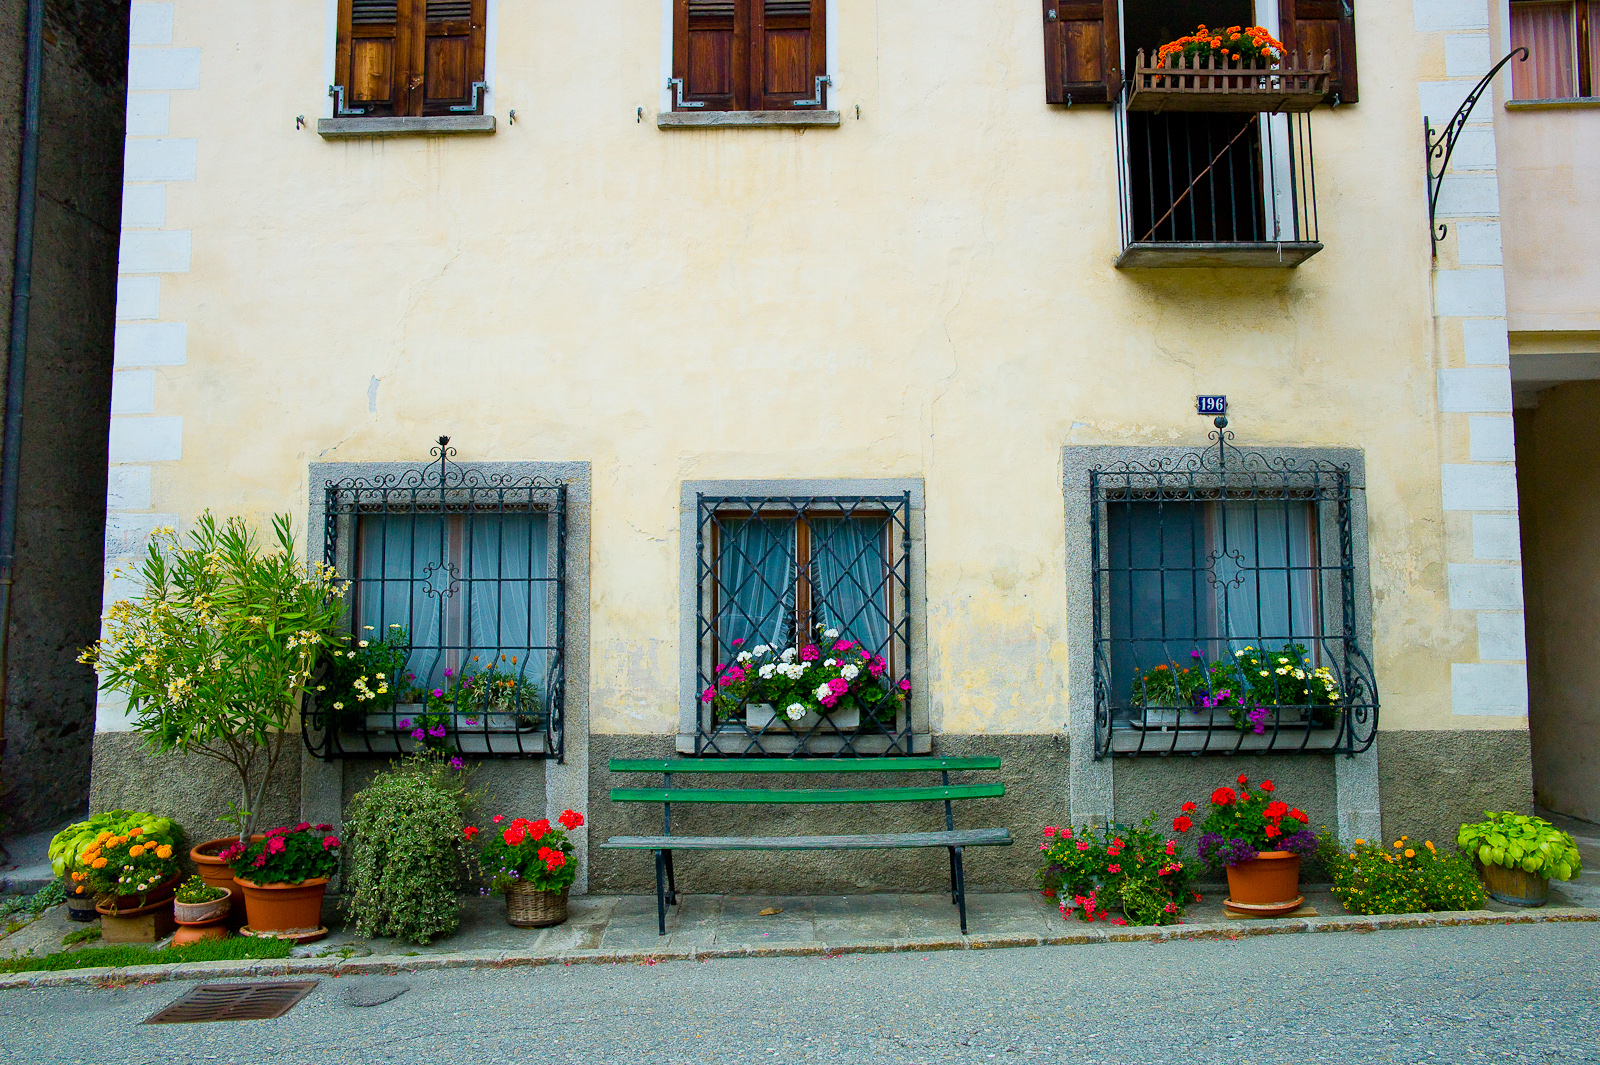 Are all Italian houses a photo opportunity?